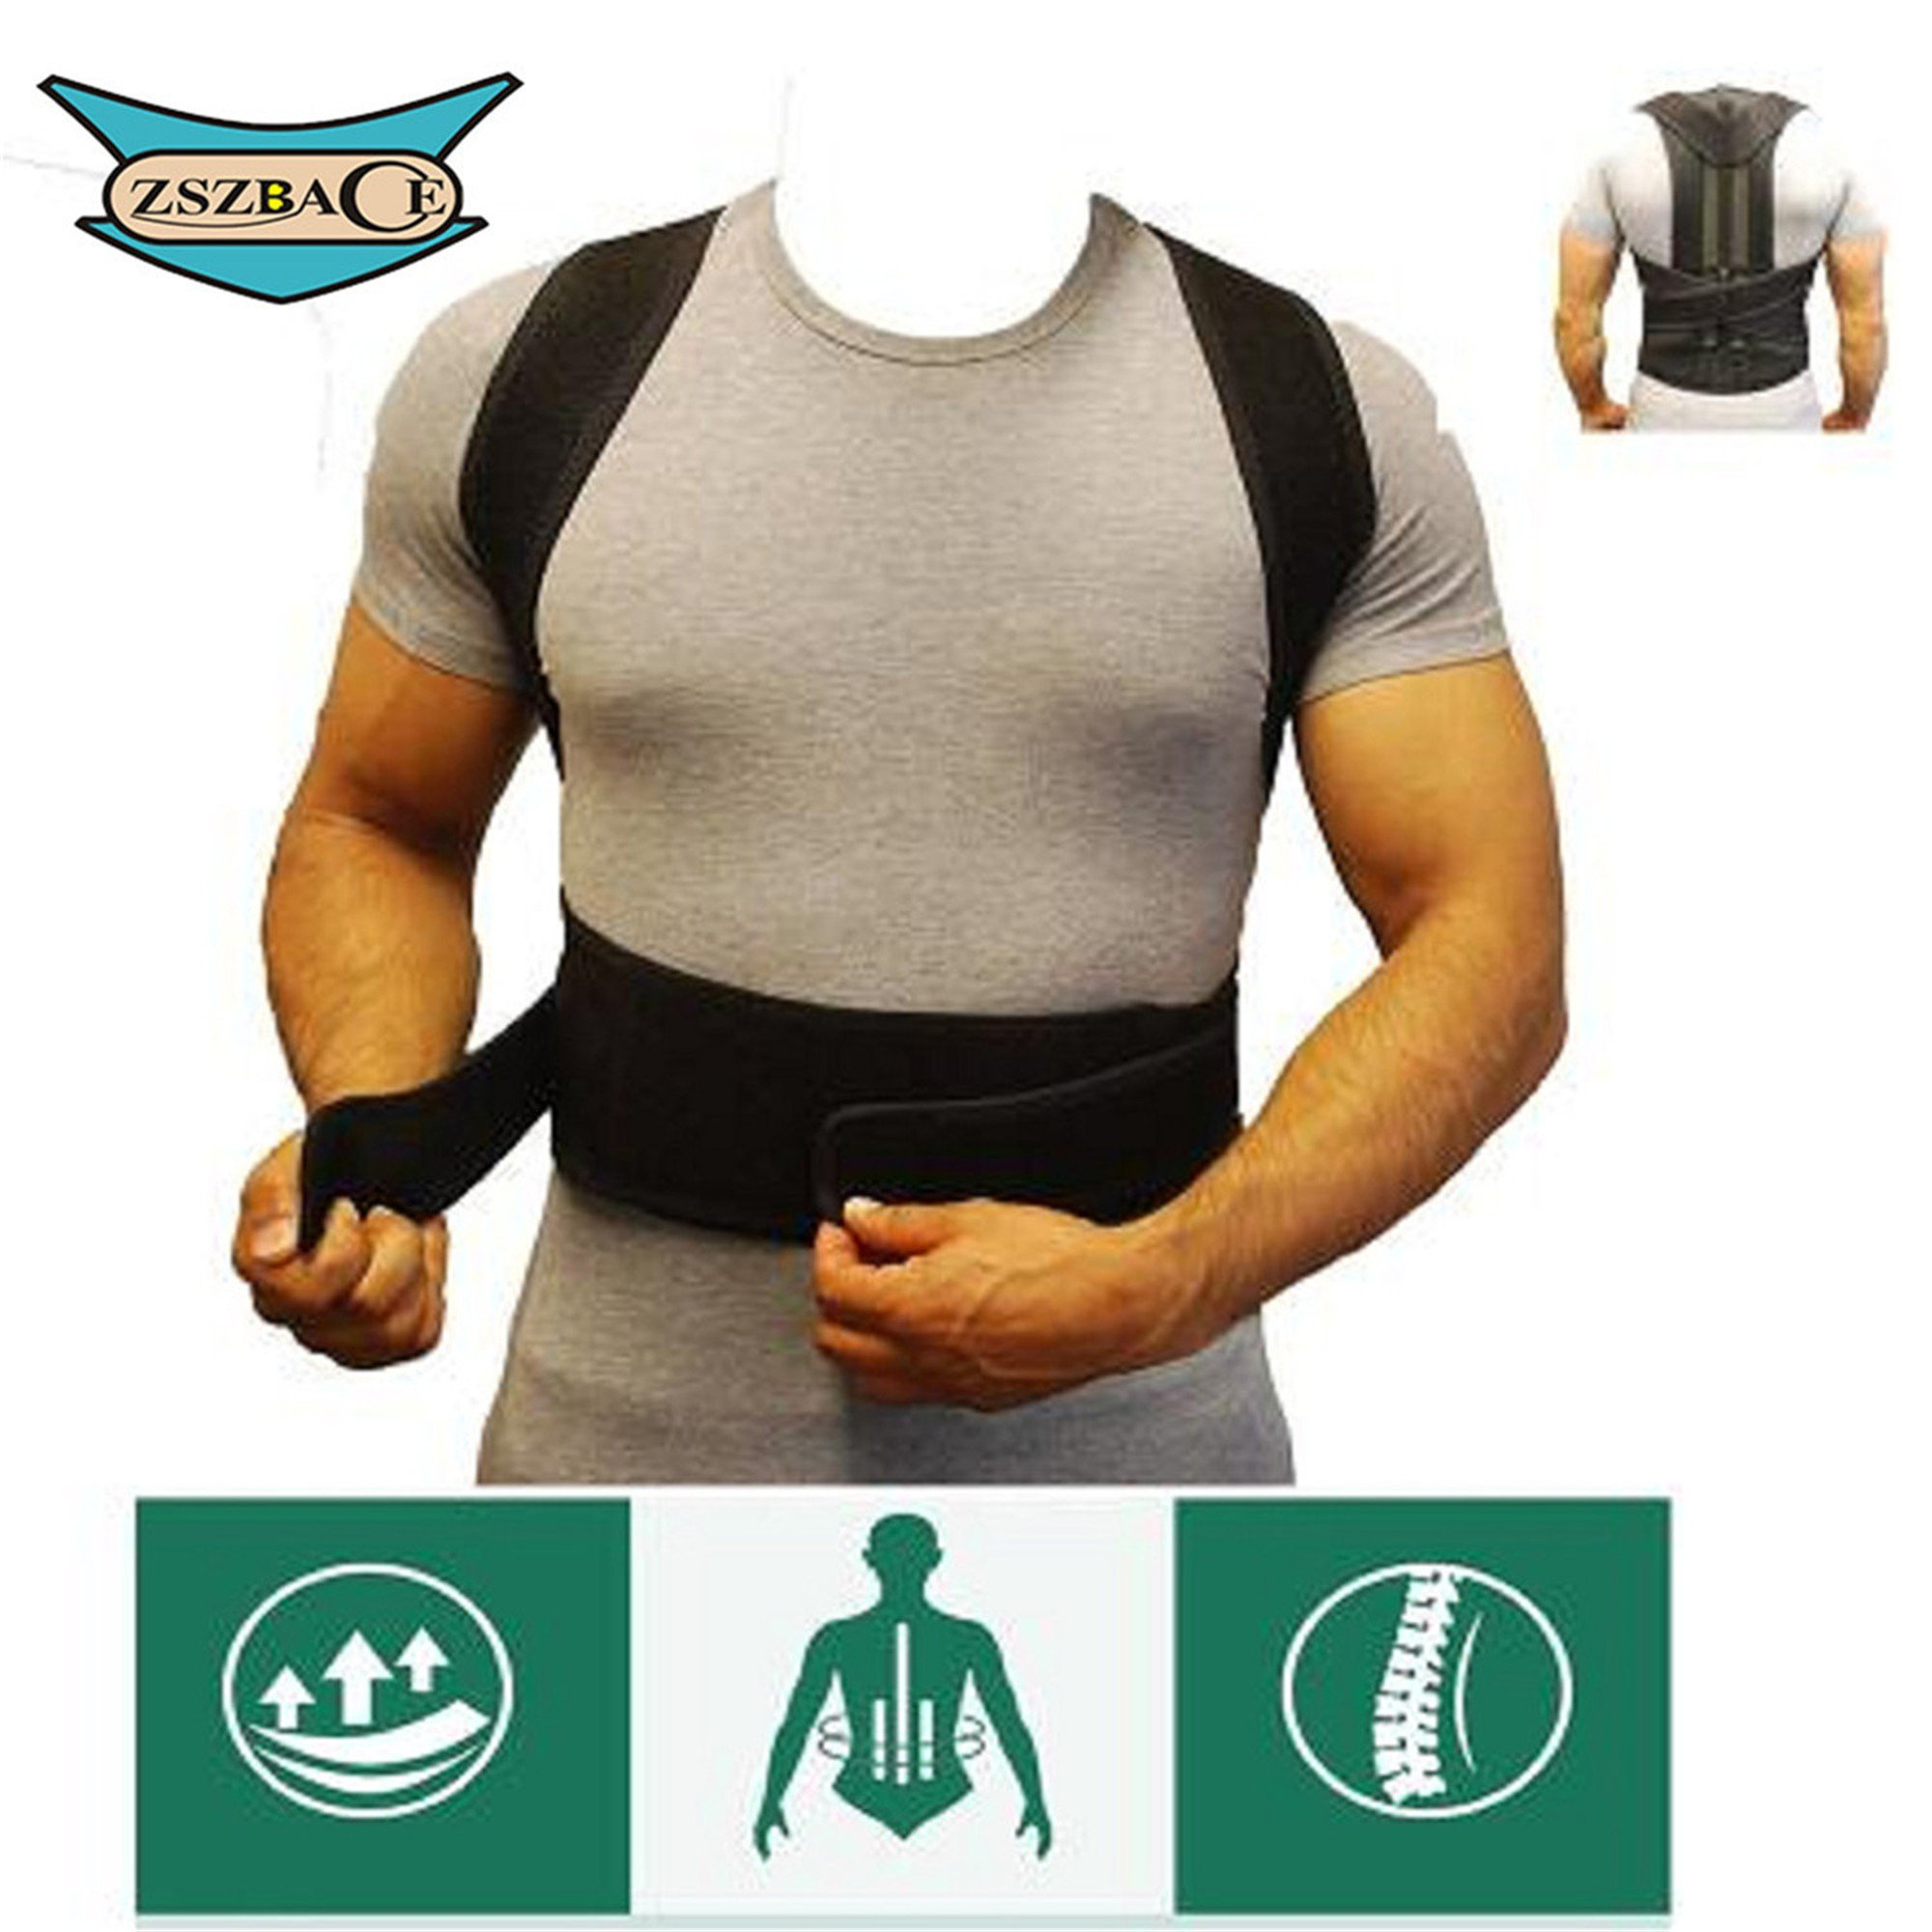 Posture Corrector Brace and Clavicle Support Straightener for Back Shoulder Forward Head Neck Aid, Improve and Fix Poor Posture for Women Men (L: waist length fits 35.4-41.3'', Black)